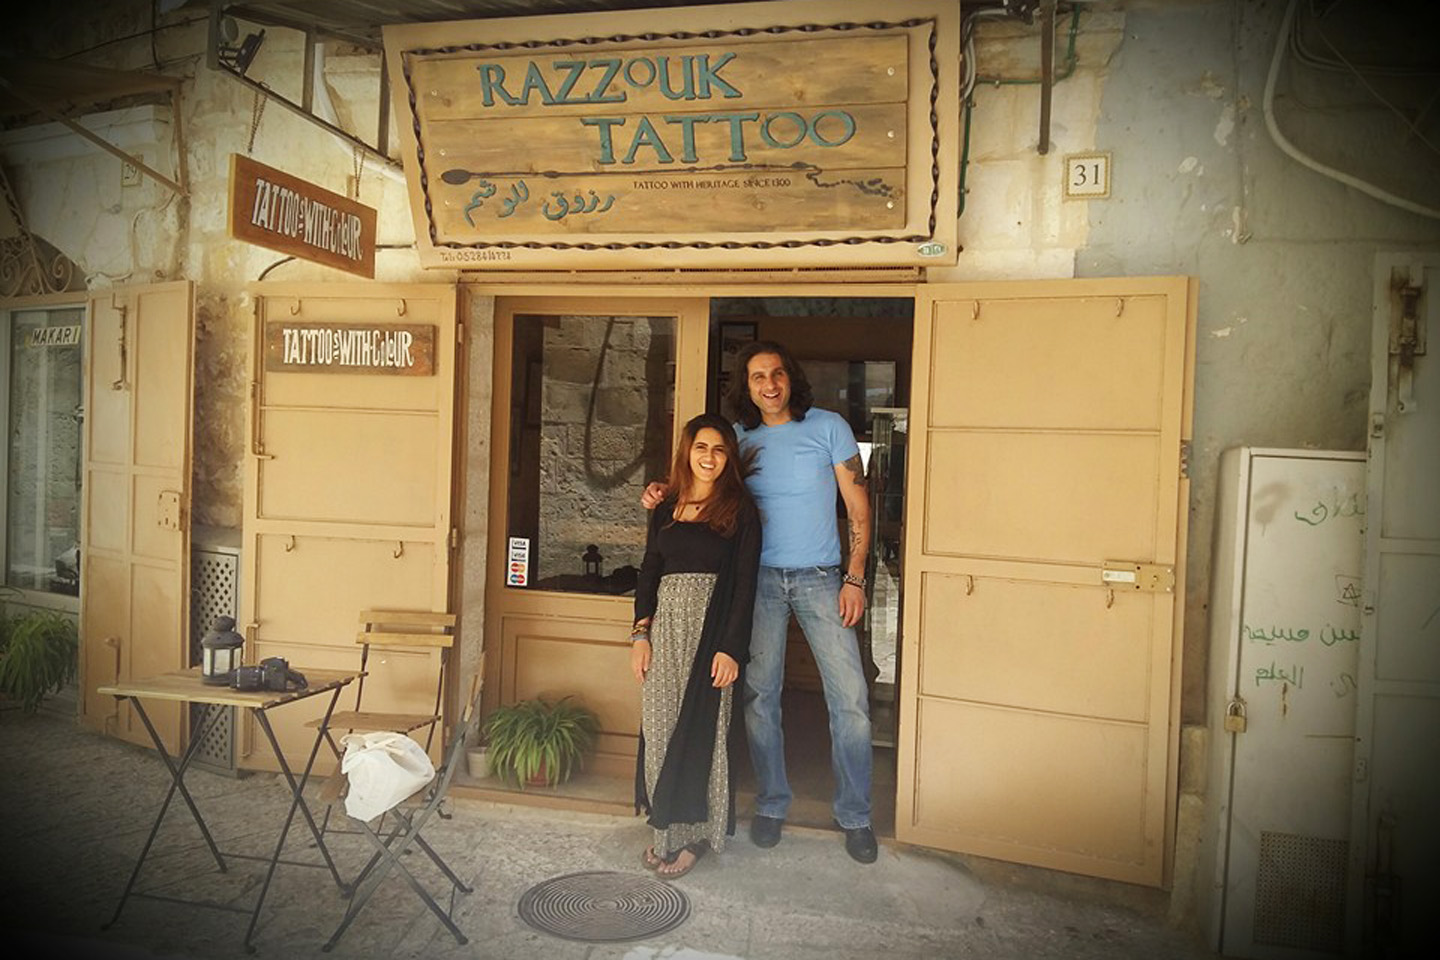 The Old City is home to the Razzouk's tattoo shop. A sign on the door identifies it unequivocally: tattoo with heritage since 1300.